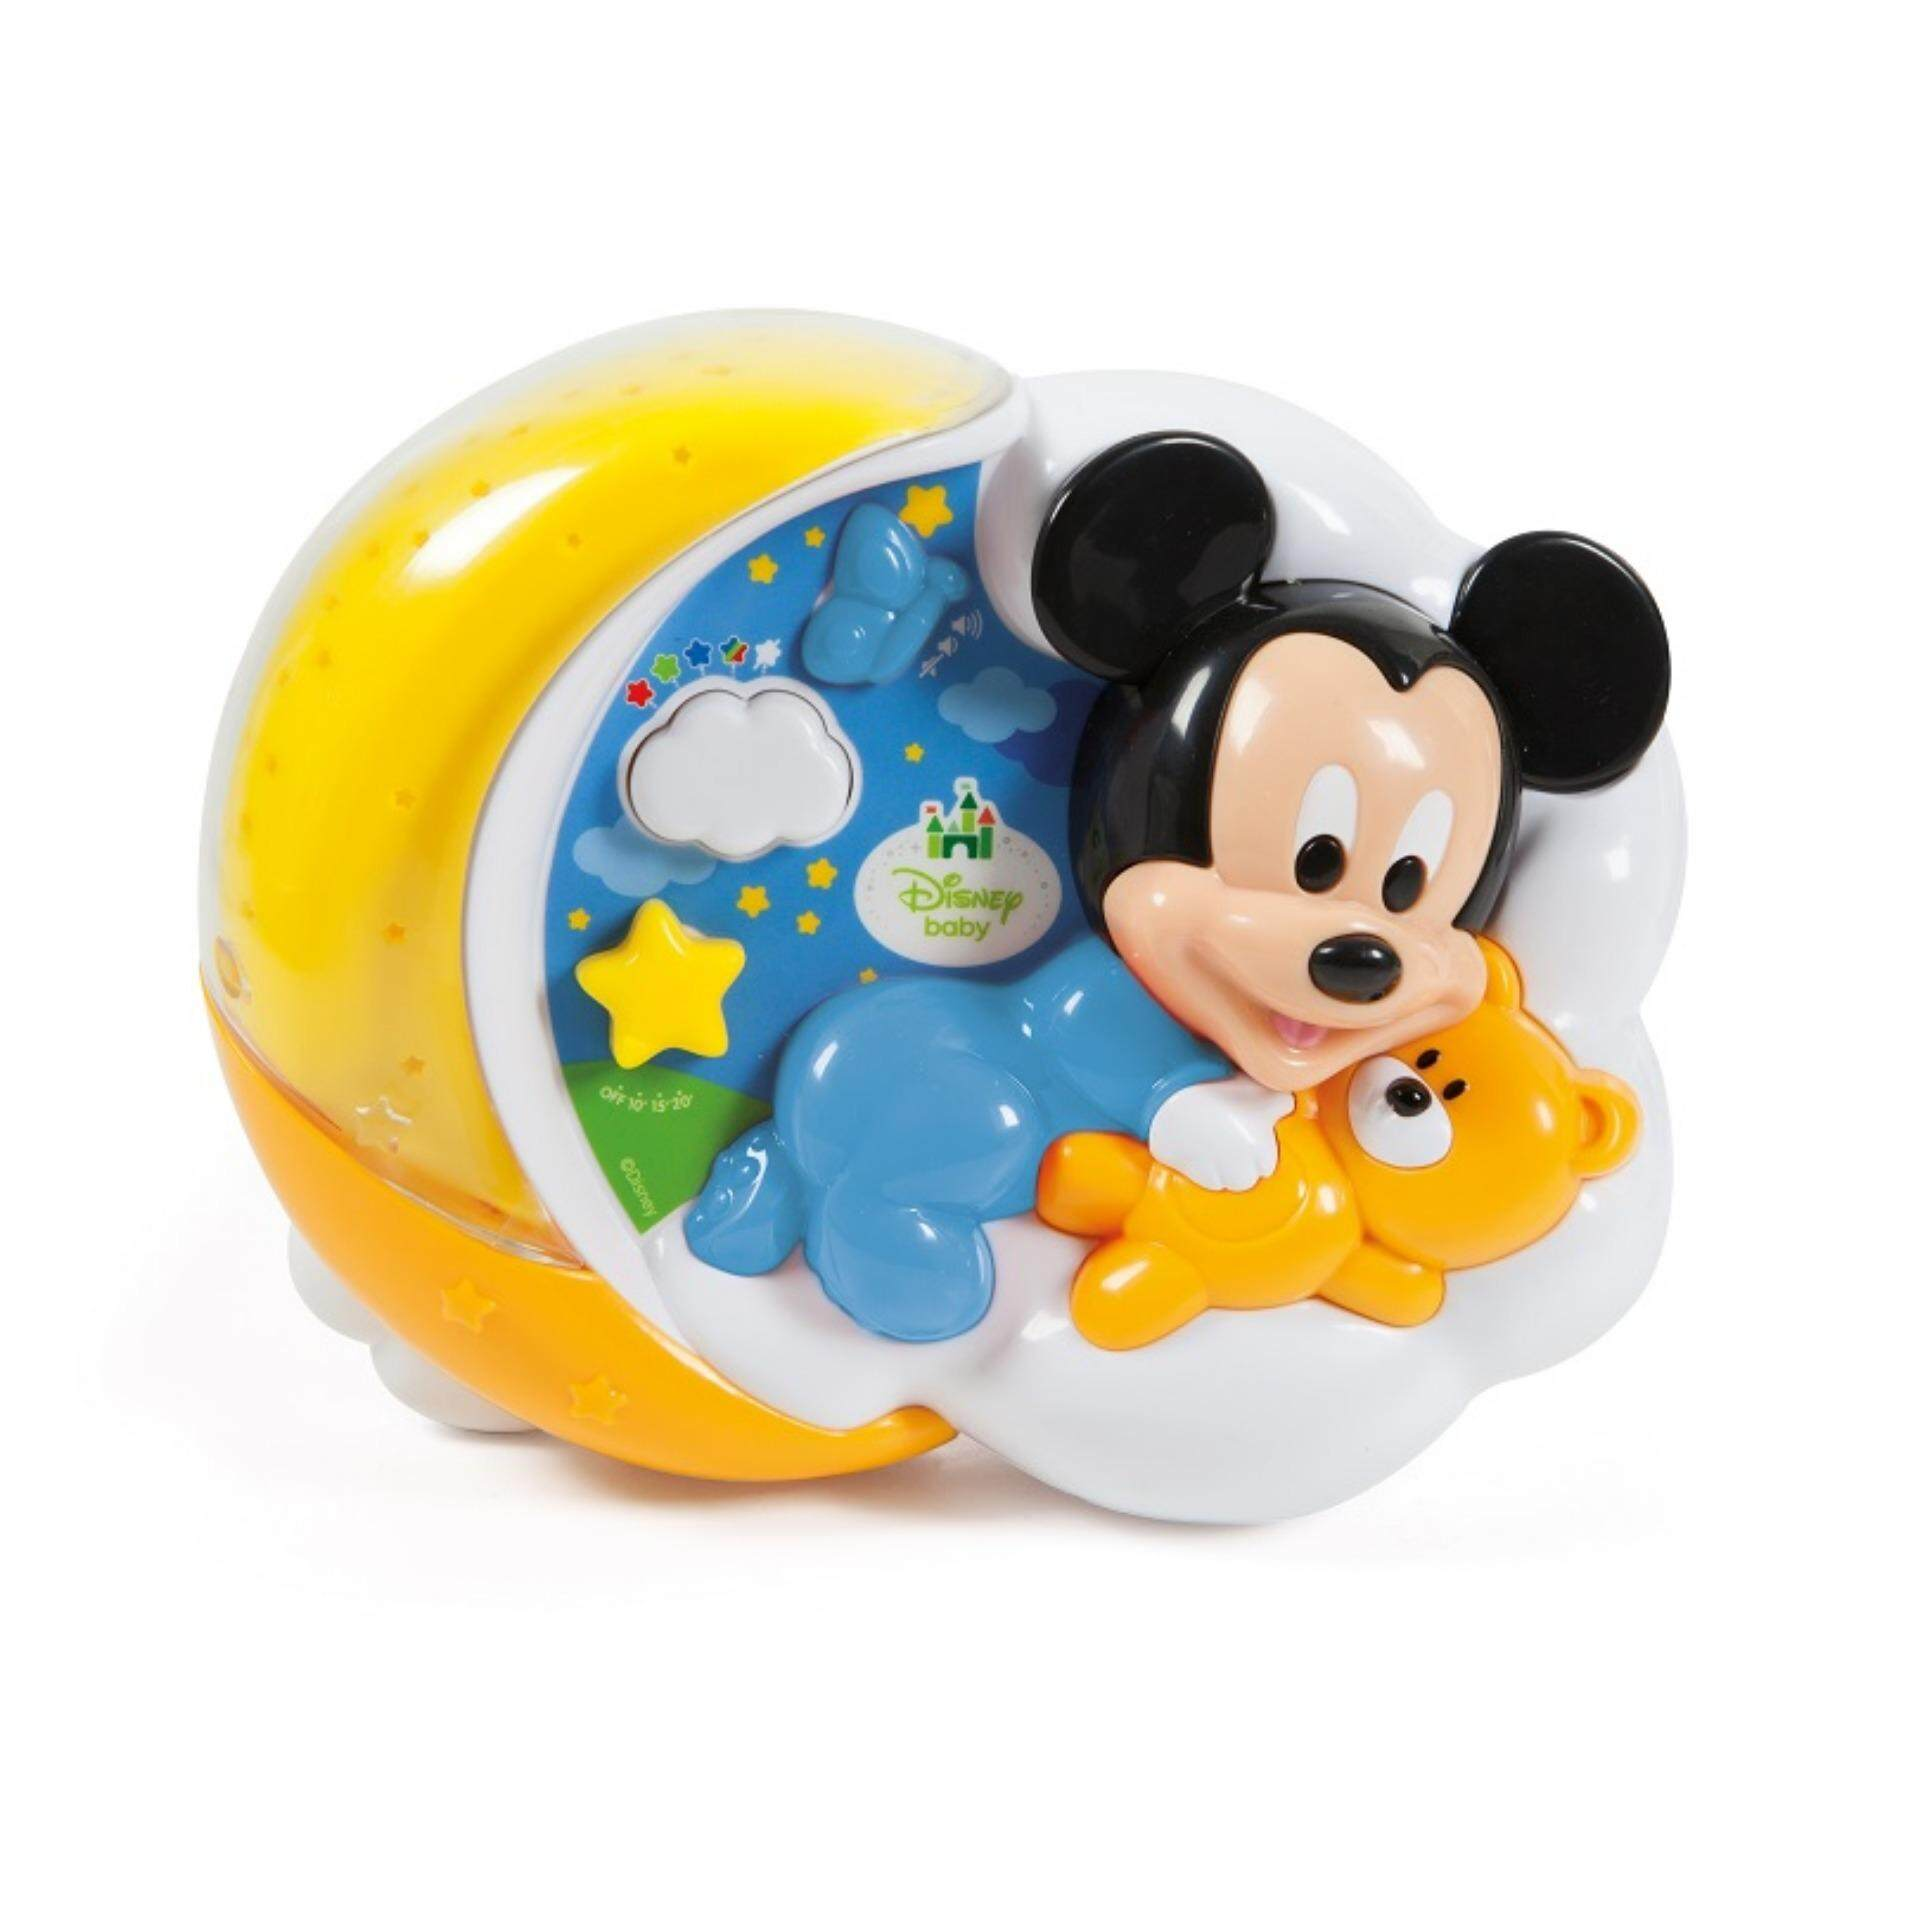 Disney Baby Developmental Magical Stars Figural Projector Musical Toys - Mickey toys education